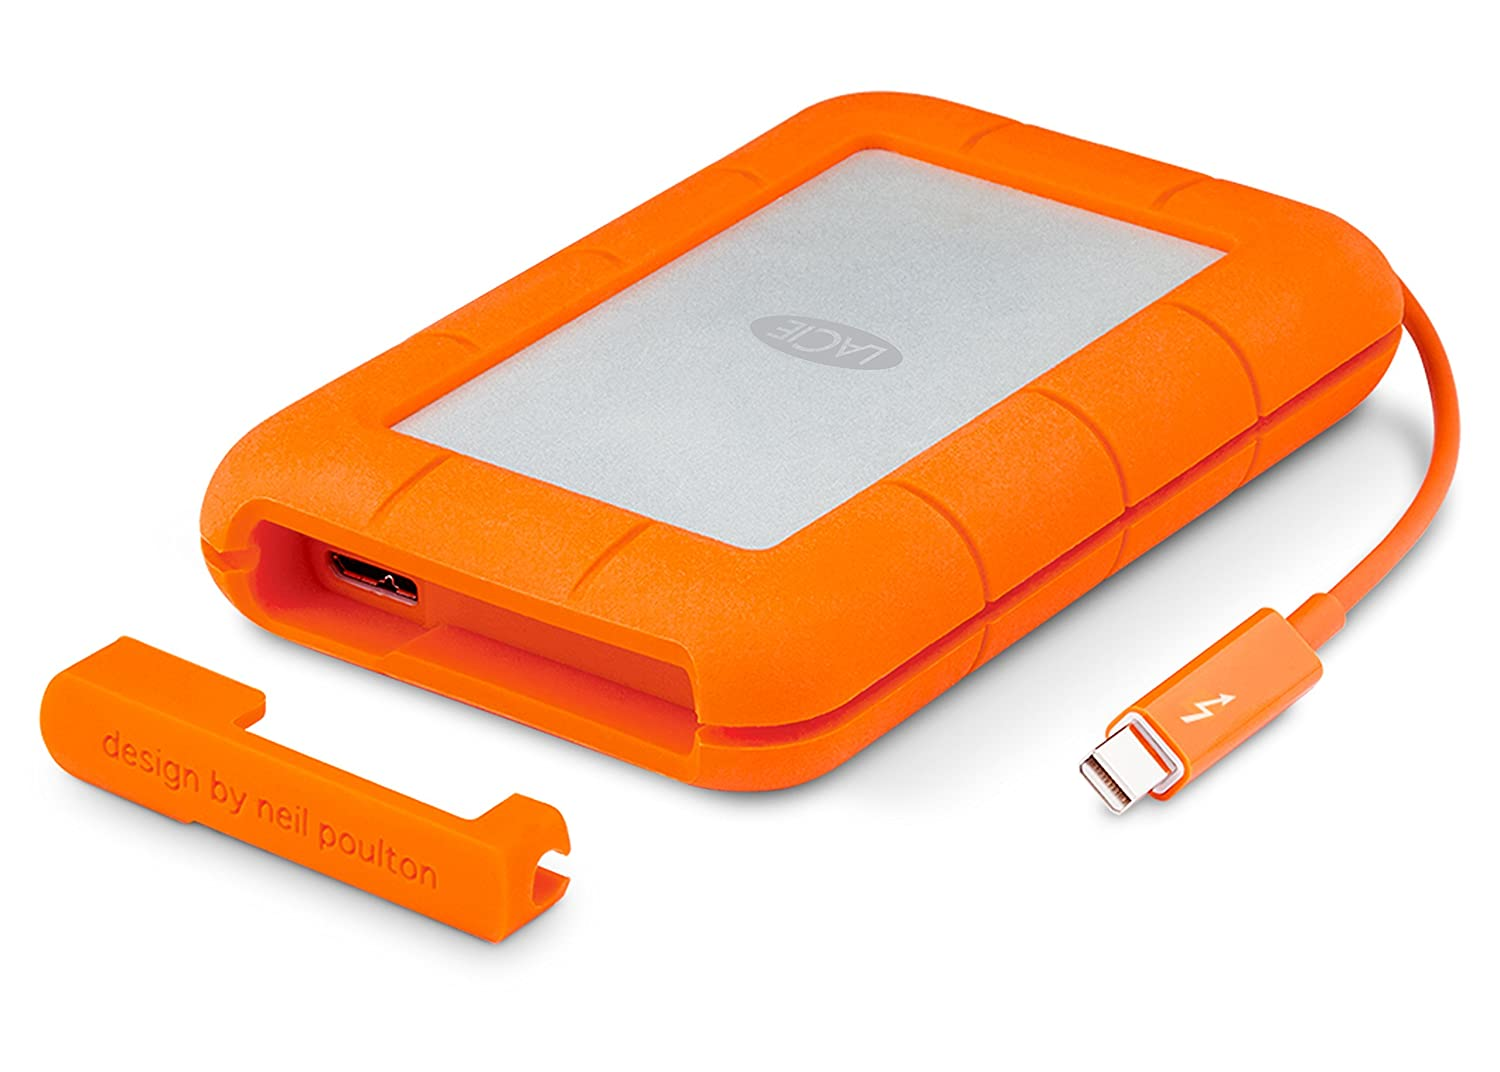 LaCie Rugged Thunderbolt USB 3.0 1TB External Hard Drive Portable HDD – Drop Shock Dust Water Resistant Shuttle Drive, for Mac and PC Computer Desktop Workstation Laptop, 1 Mo Adobe CC